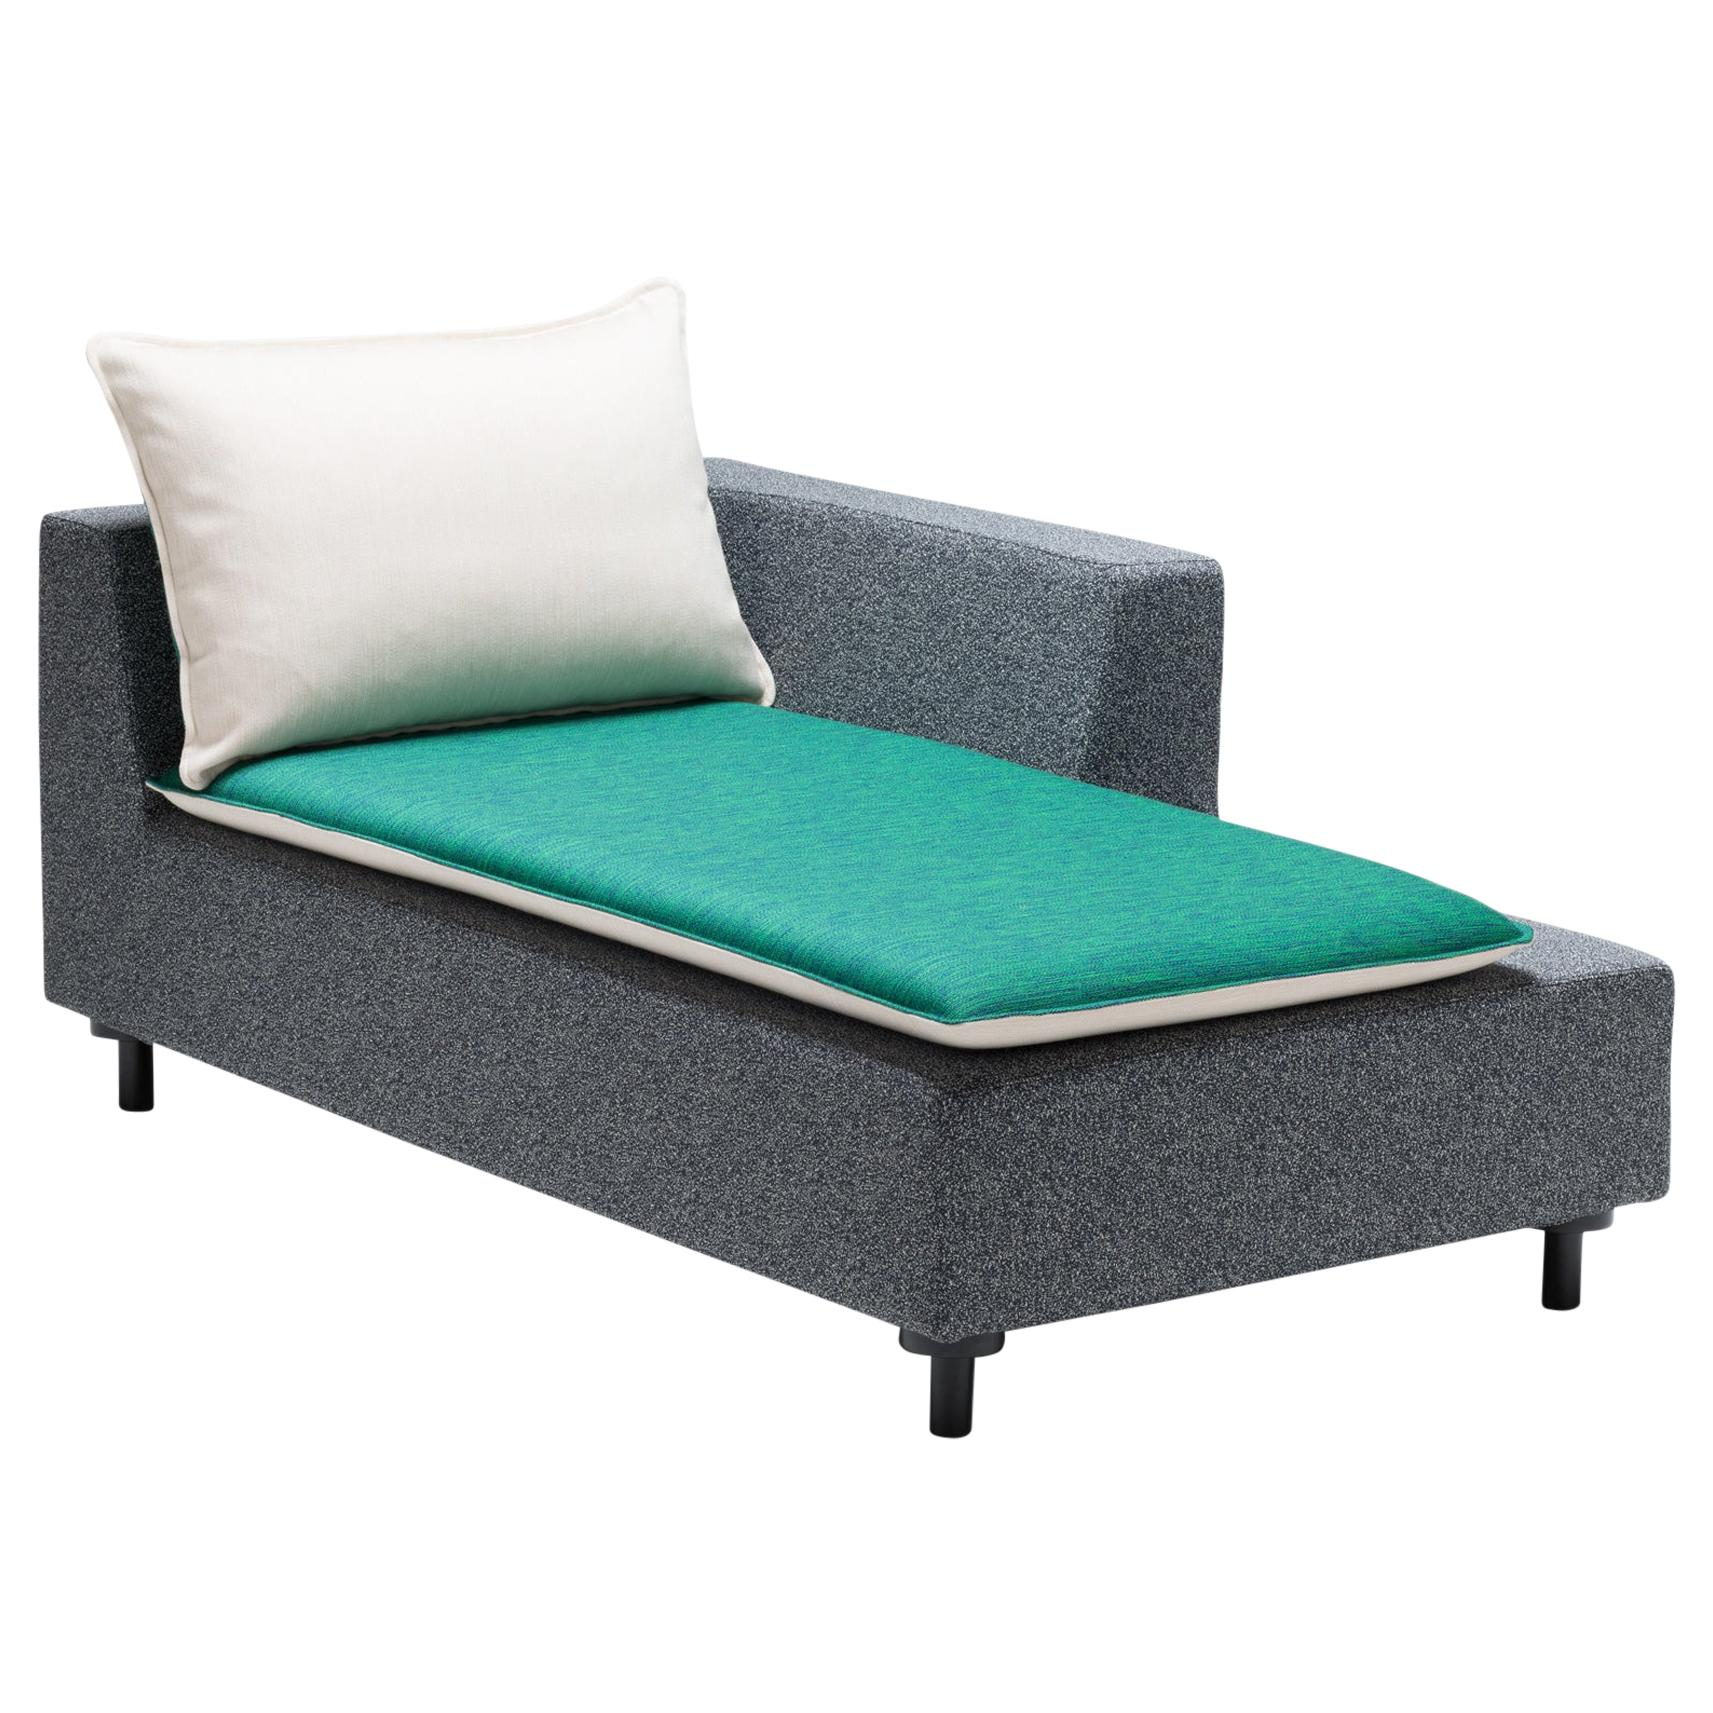 Established & Sons Barbican Chaise in White and Jade by Konstantin Grcic